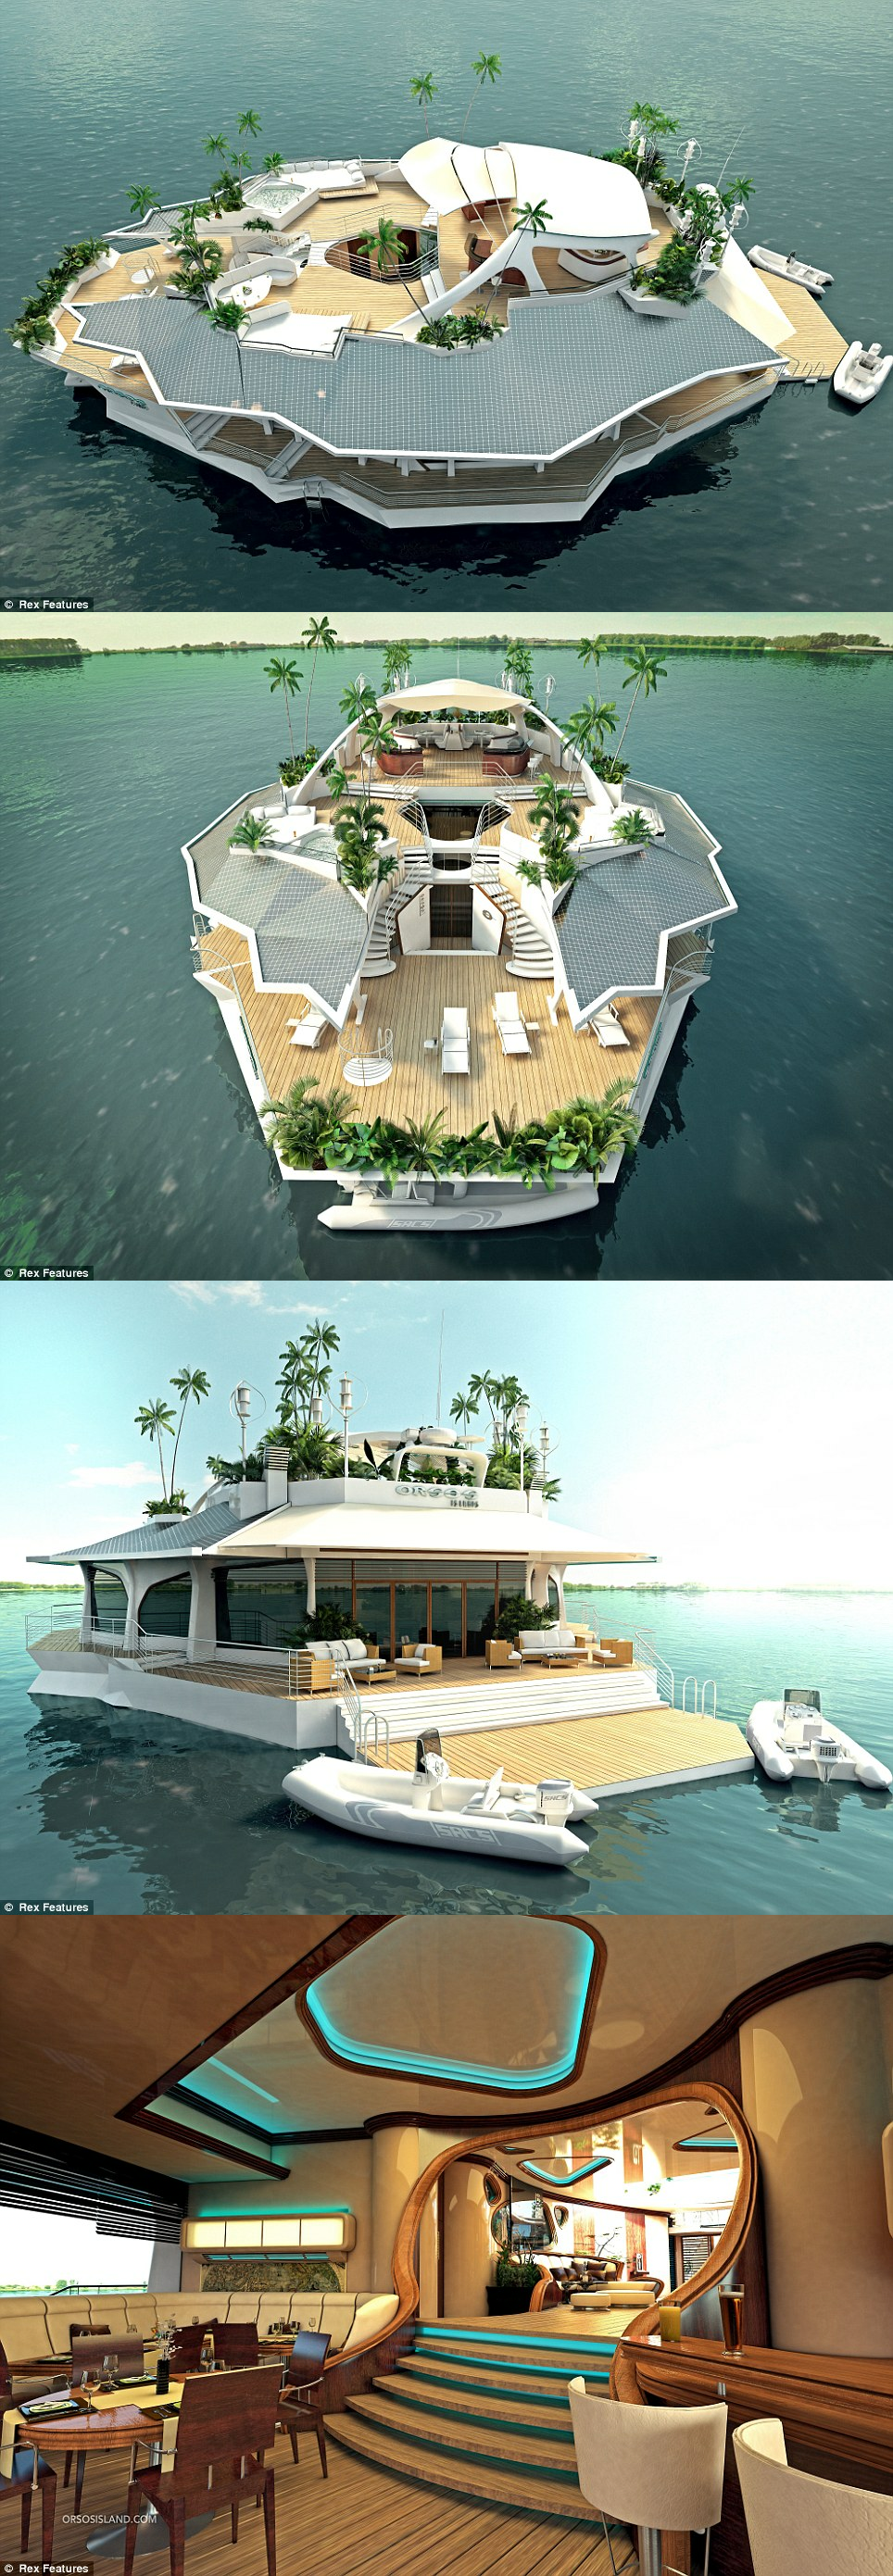 Orsos Island Floating Luxury Yacht Amazing What People Can Dream Inspiration Orsos Island Orsos